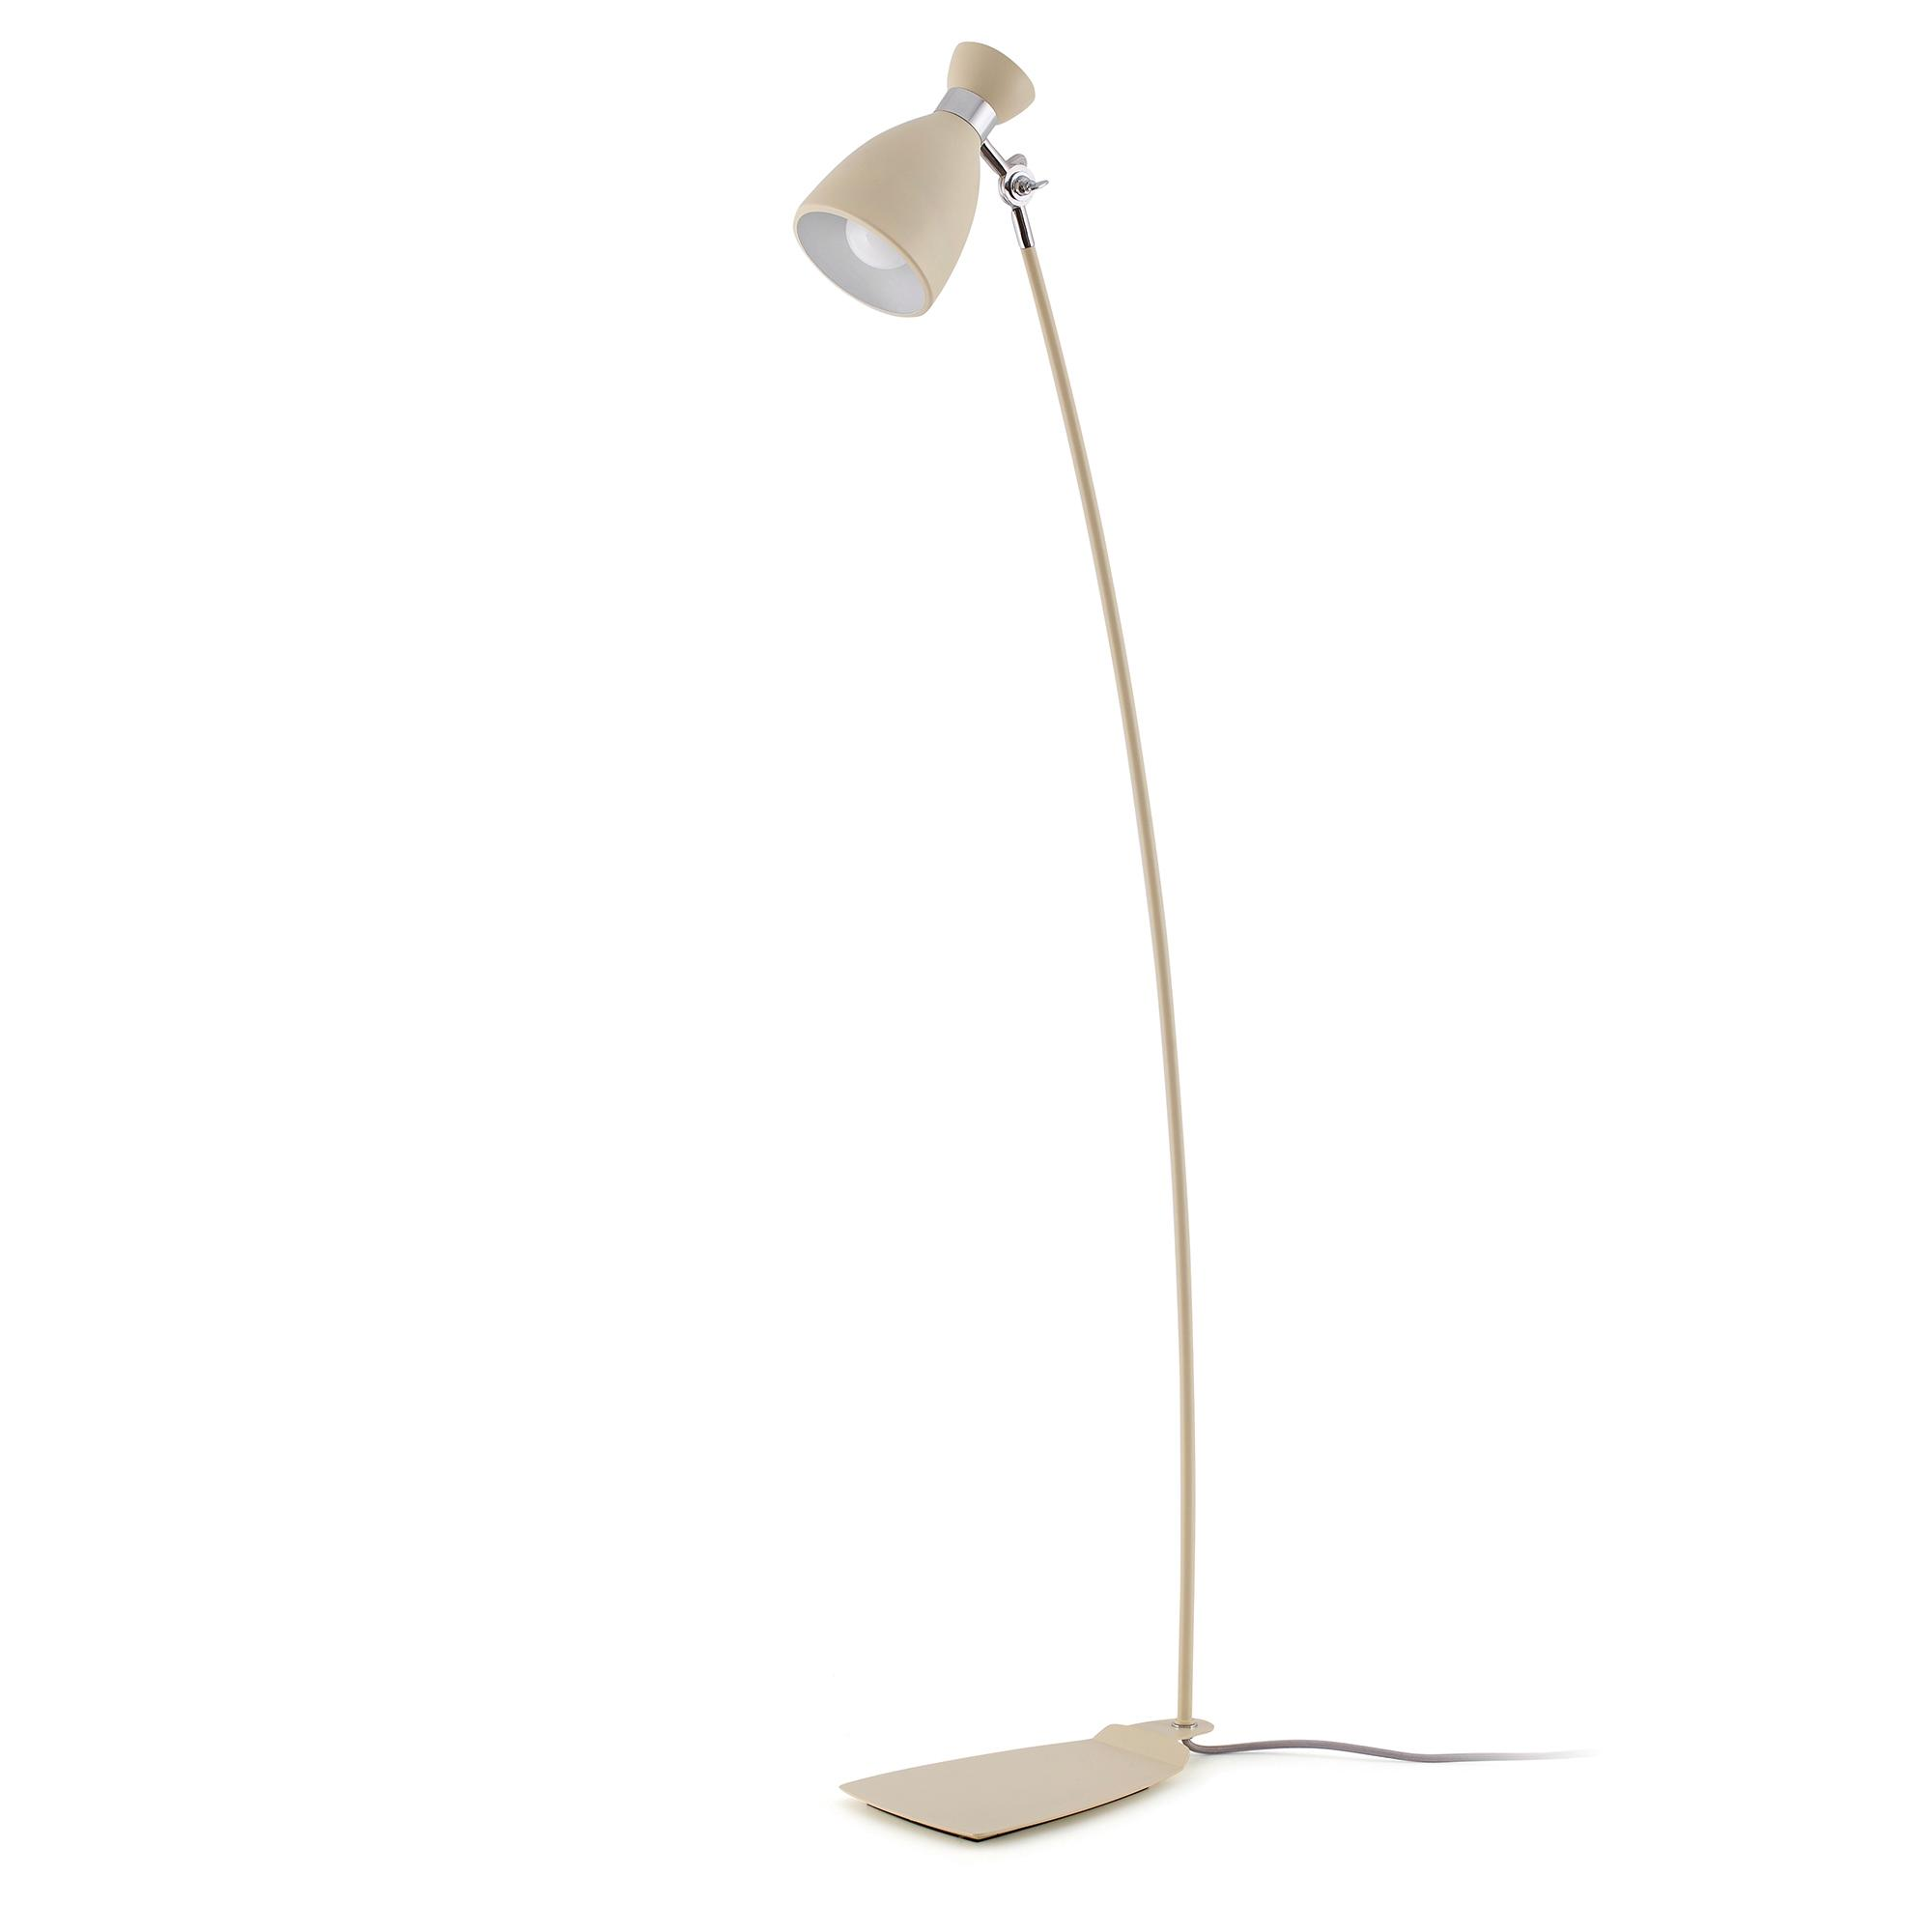 Lampadaire design int rieur retro faro beige for Lampadaire interieur design